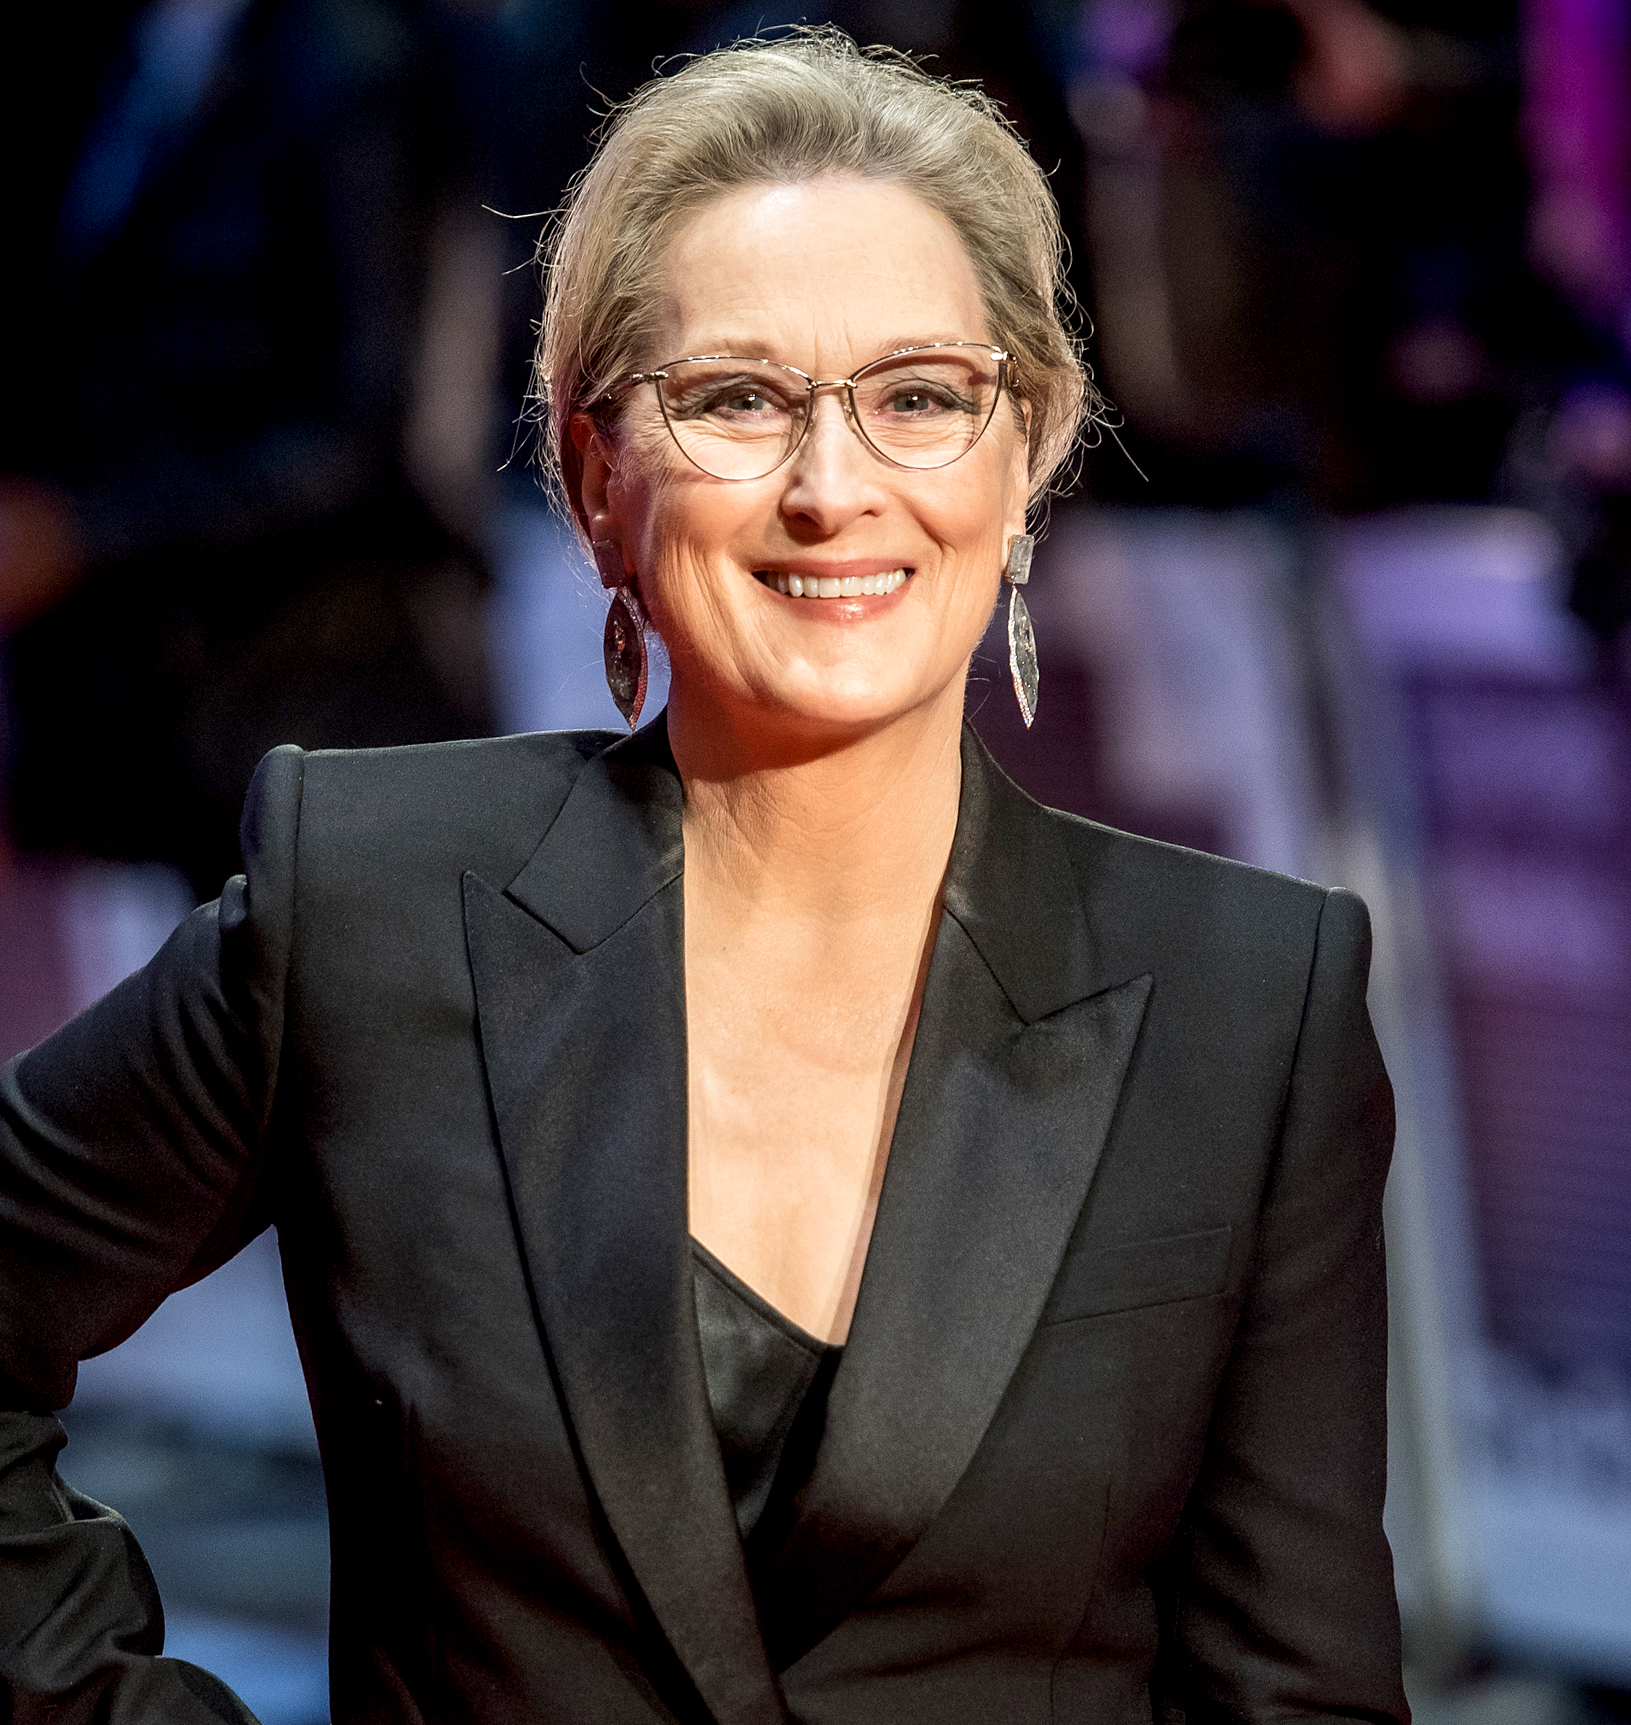 Meryl Streep Is Joining Big Little Lies Season 2